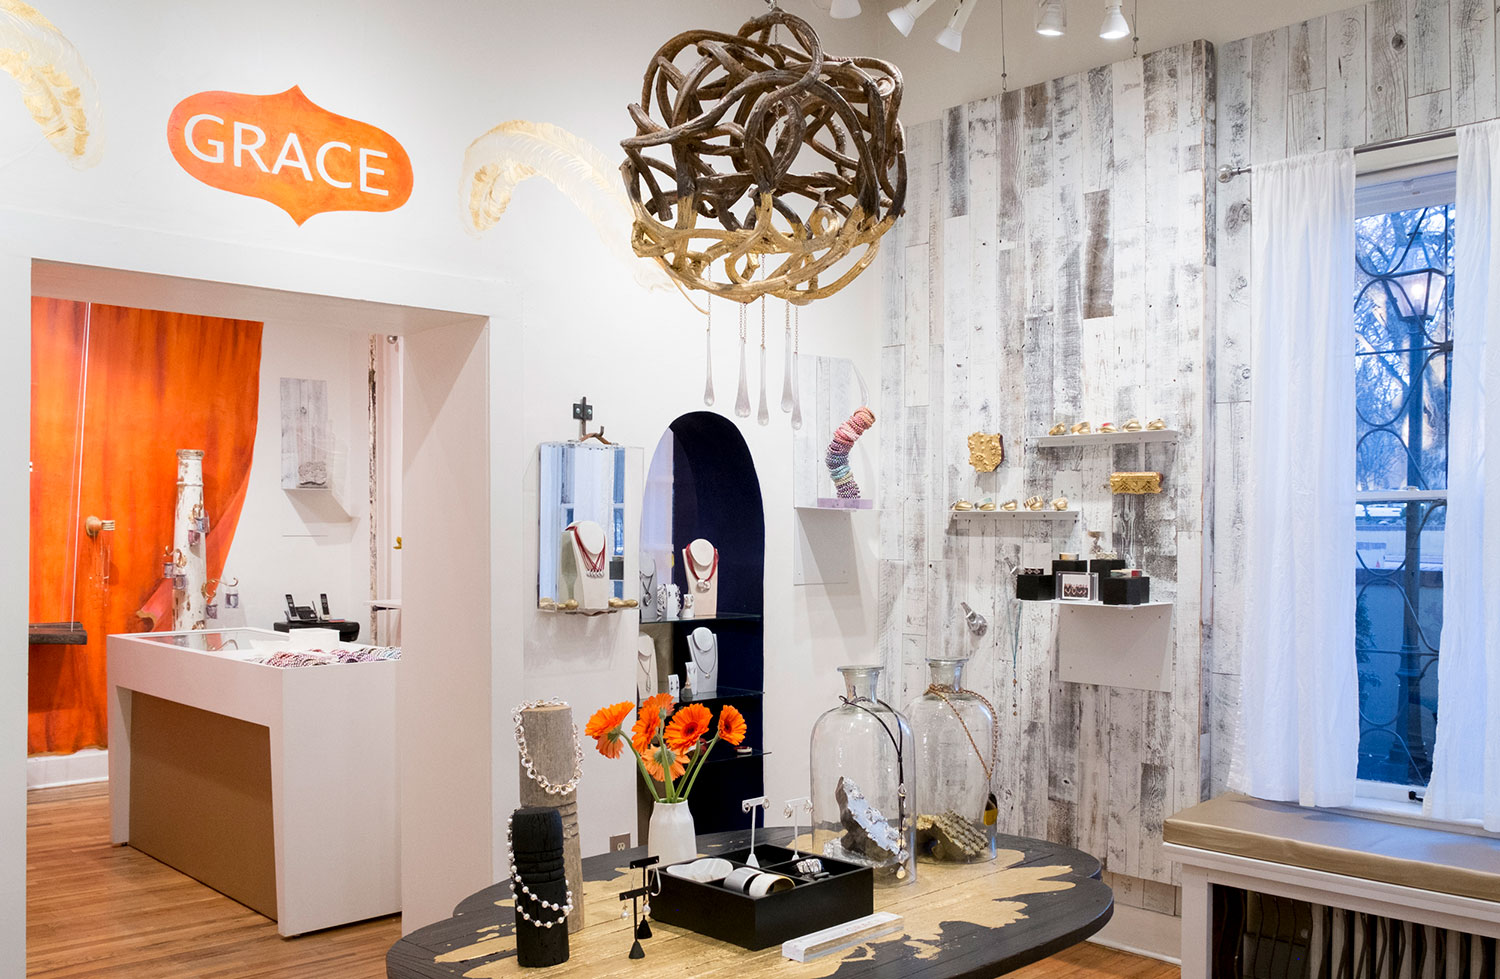 ebfc9d167 America's Coolest: Santa Fe Jewelry Store Shows Customers the Meaning of  Grace - INSTOREMAG.COM